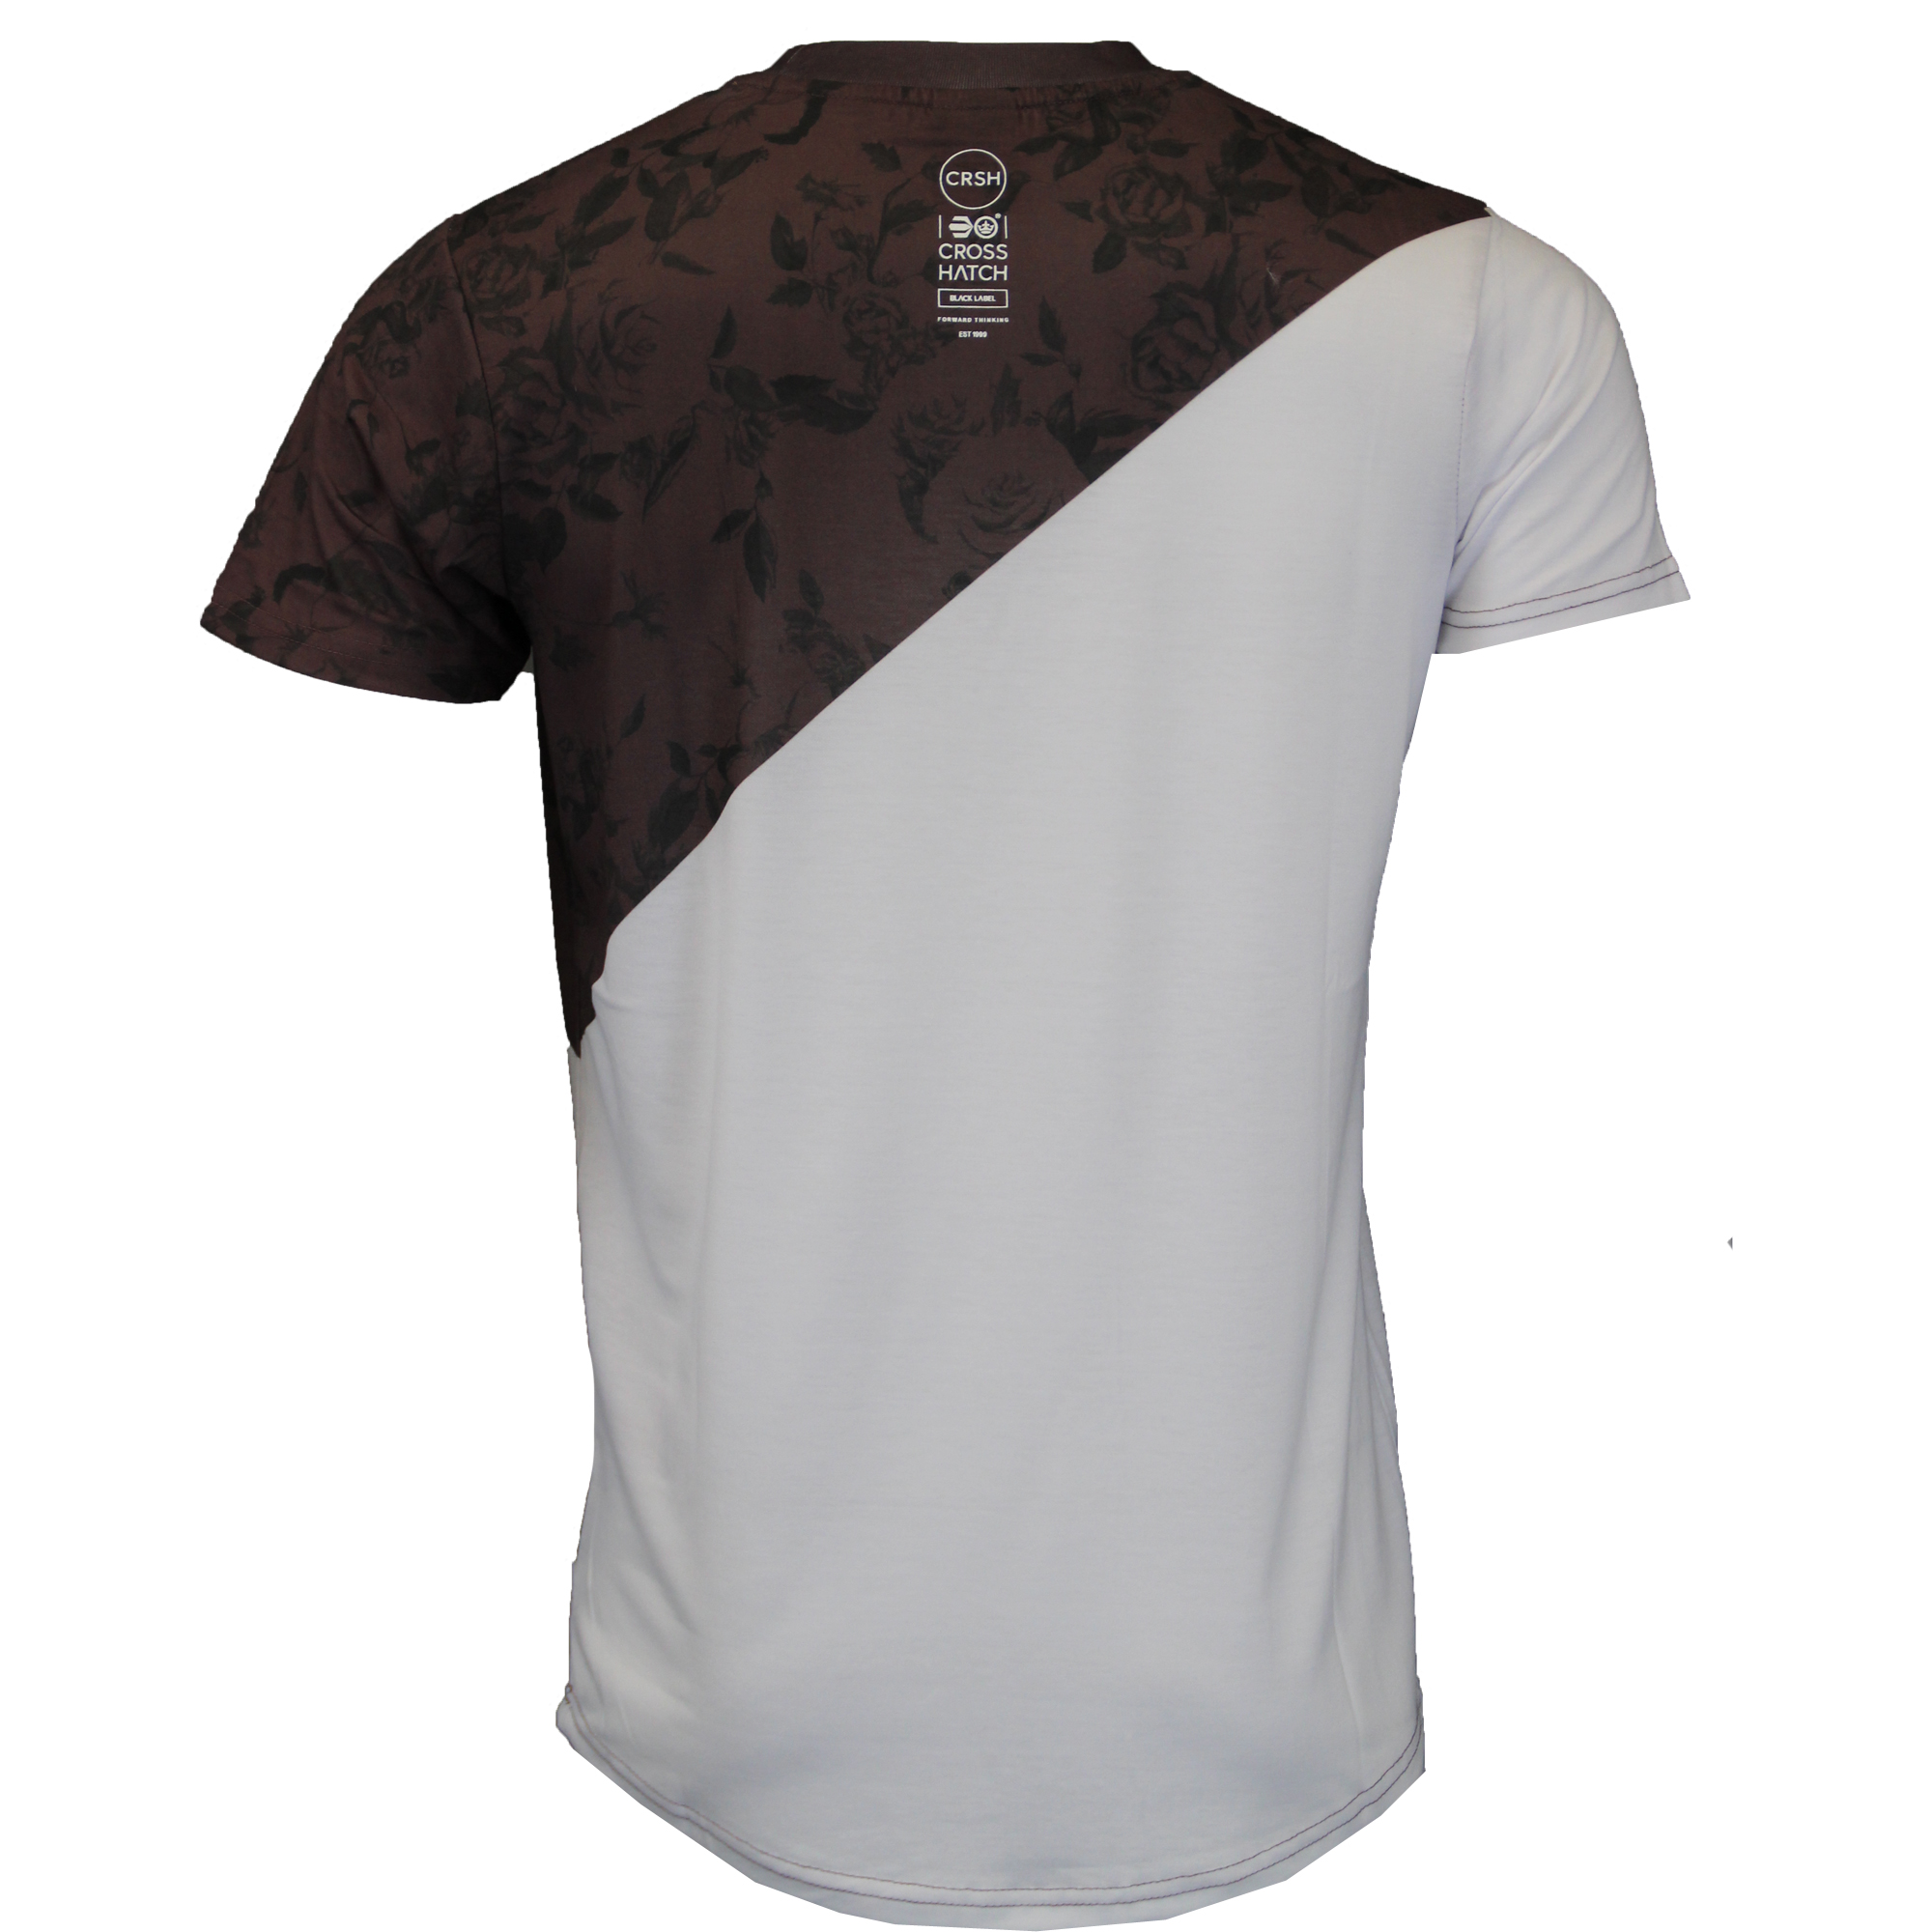 Mens-T-Shirt-Crosshatch-Short-Sleeved-Connors-Roses-Print-Top-Floraz-Summer-New thumbnail 3